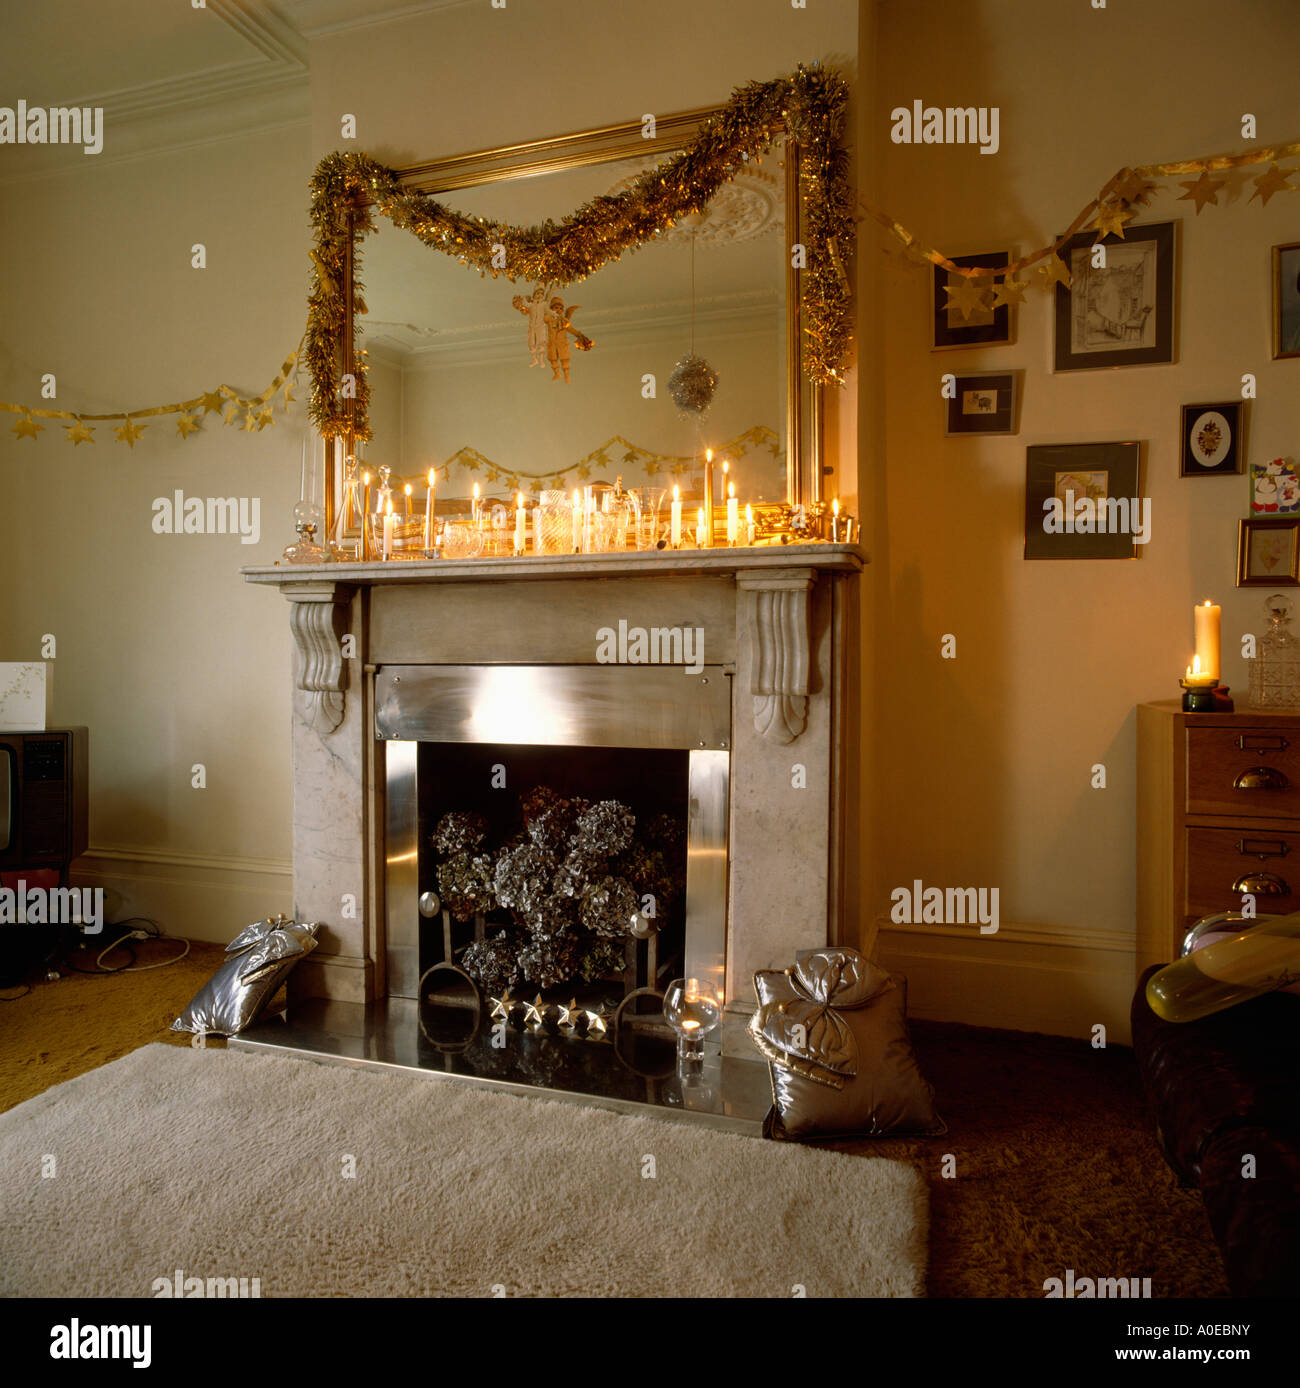 Mirror Above Marble Fireplace With Lighted Candles And Garland